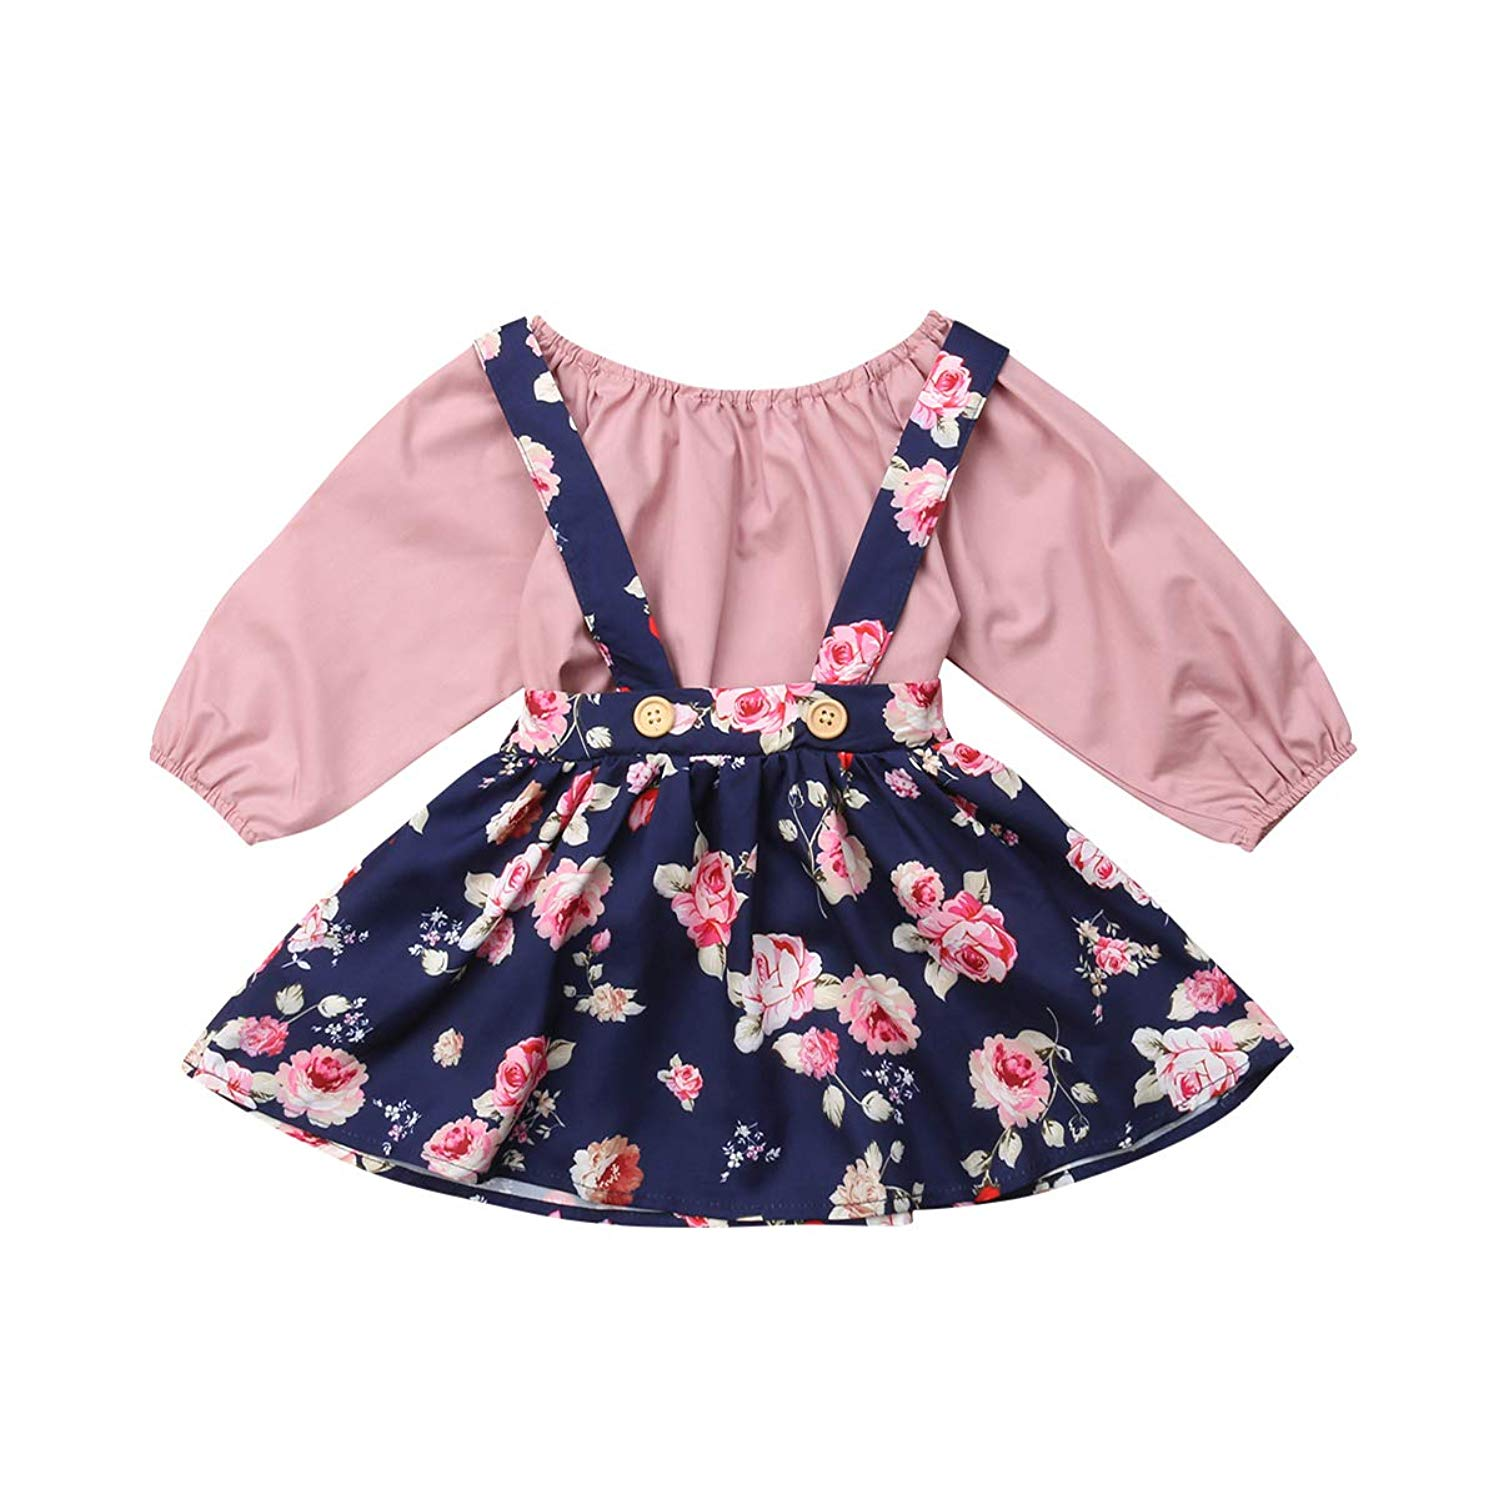 FIRERO Baby Clothes Toddler Baby Girls Kid Flowers Ruffles Cartoon Printed Dress Outfits Clothes